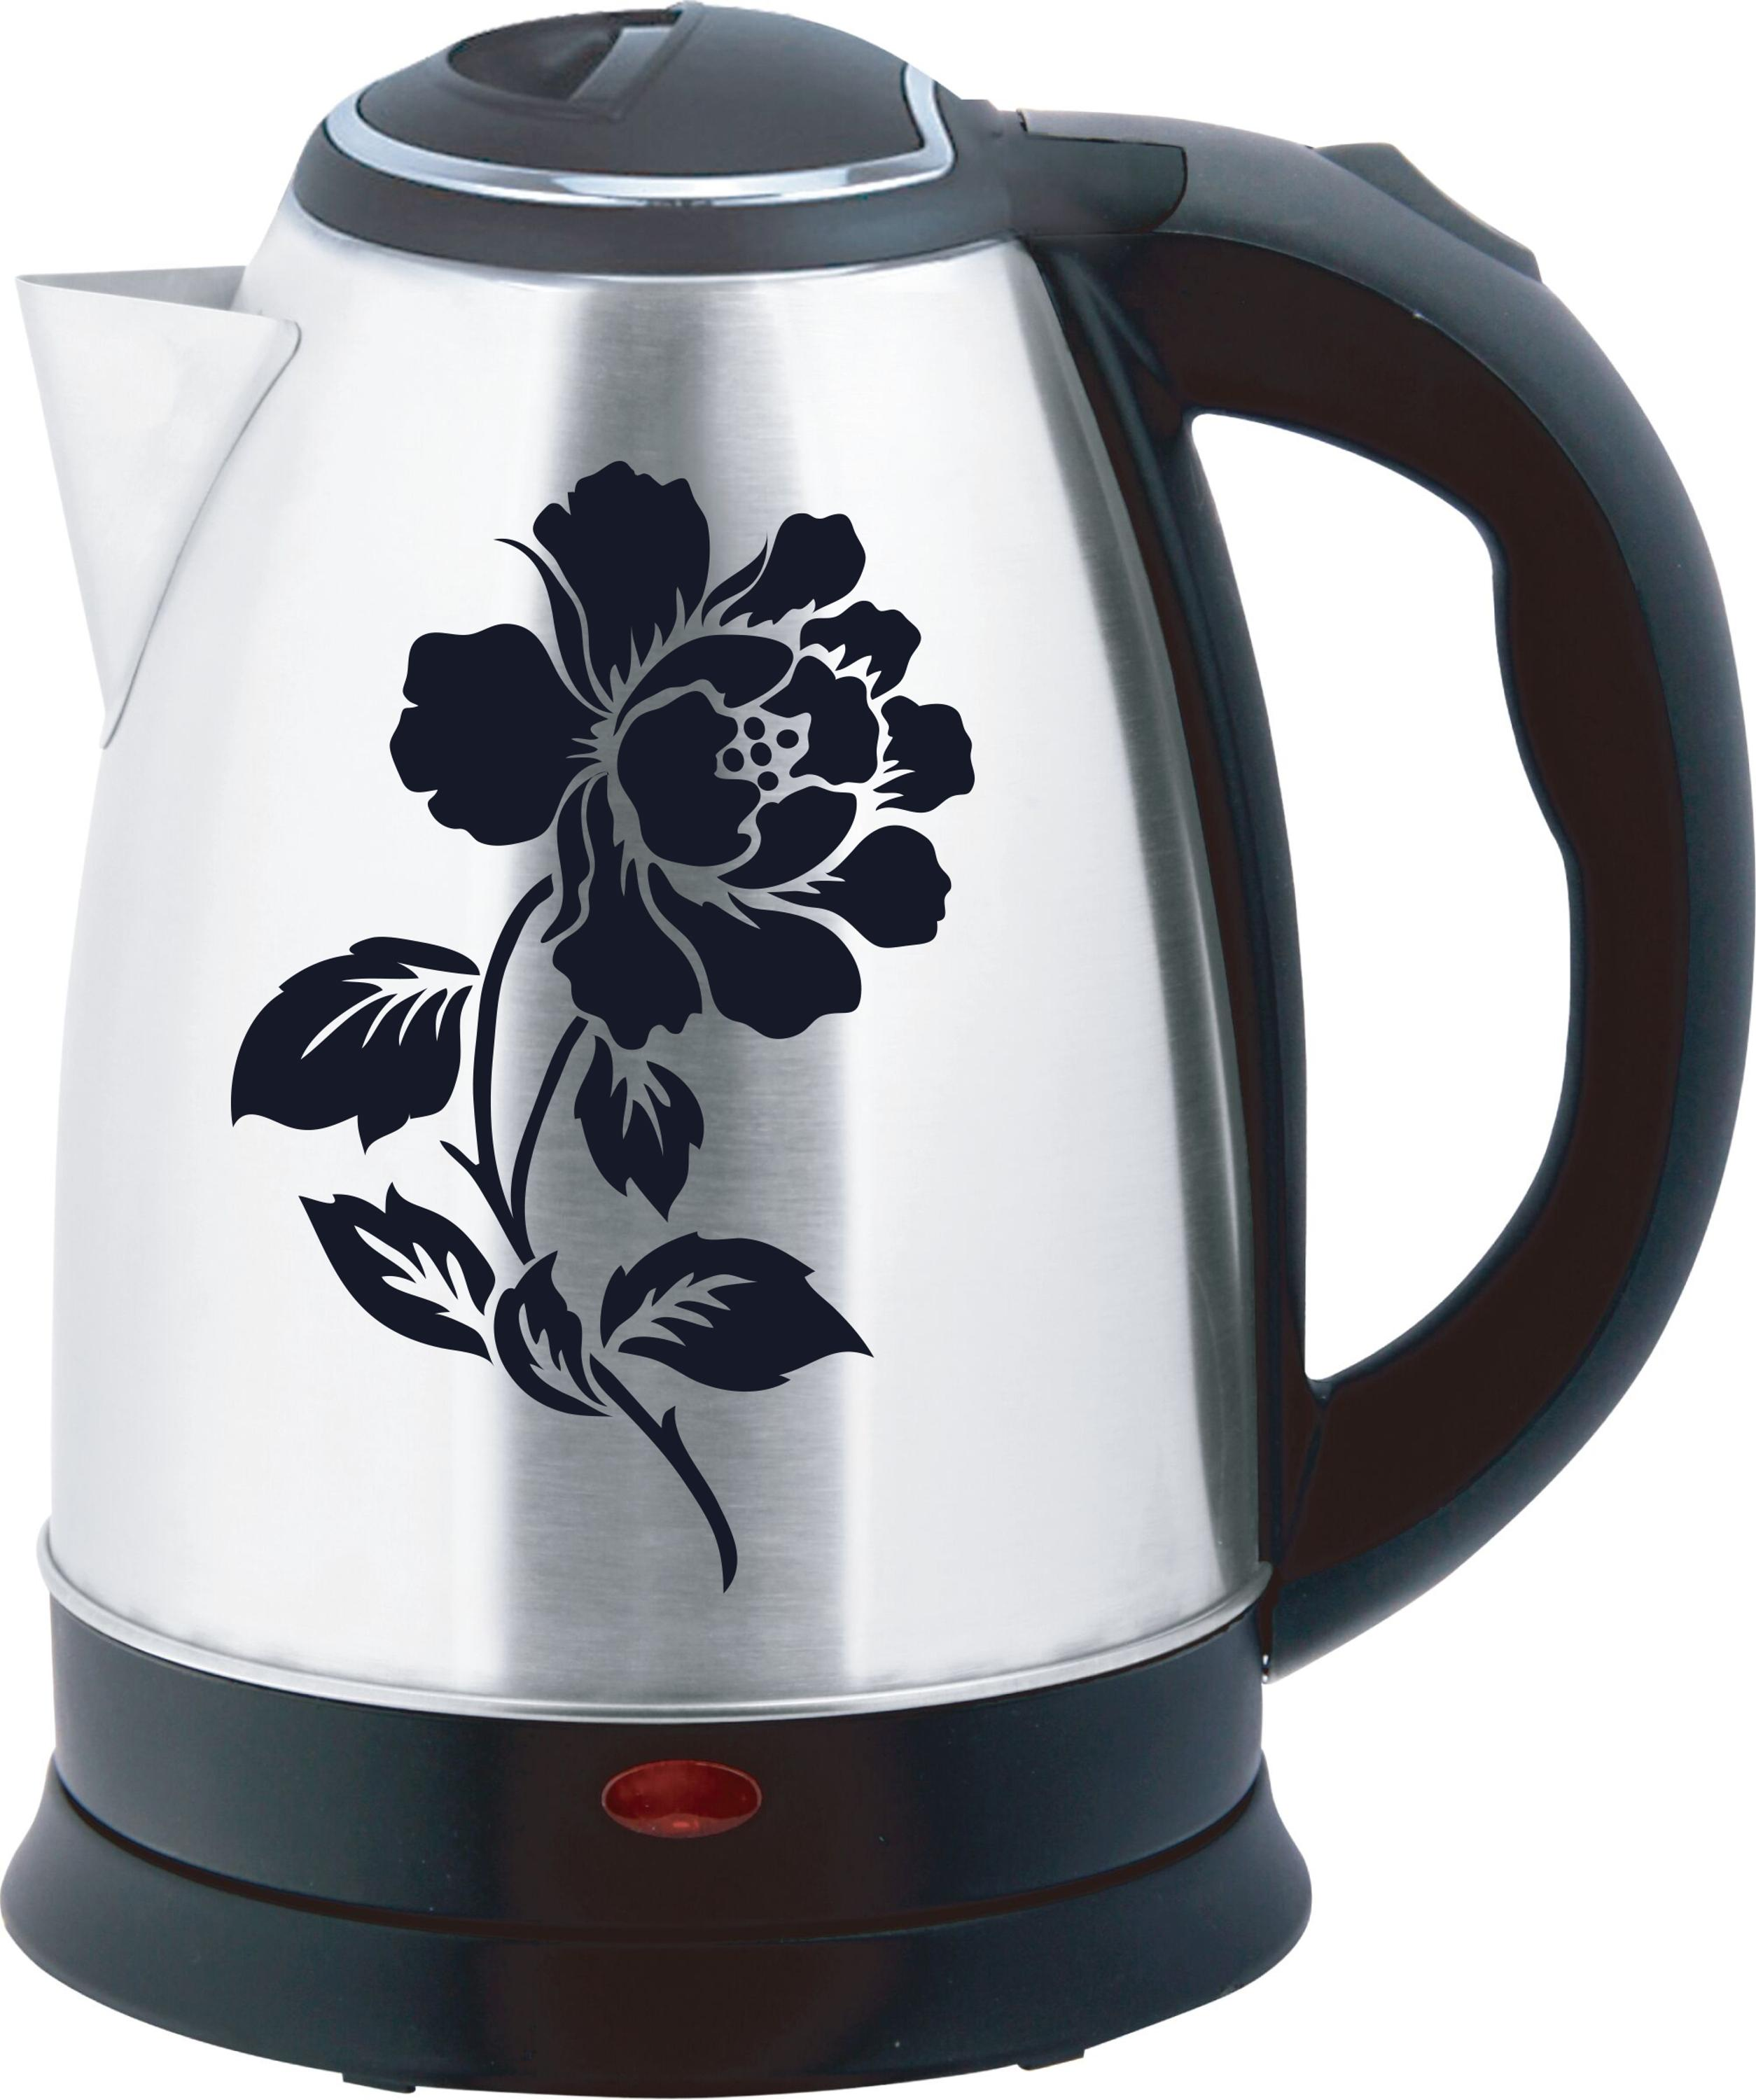 best polishing industrial price 1.2L/1.5L/1.8L stainless steel electric tea kettle shunde for christman